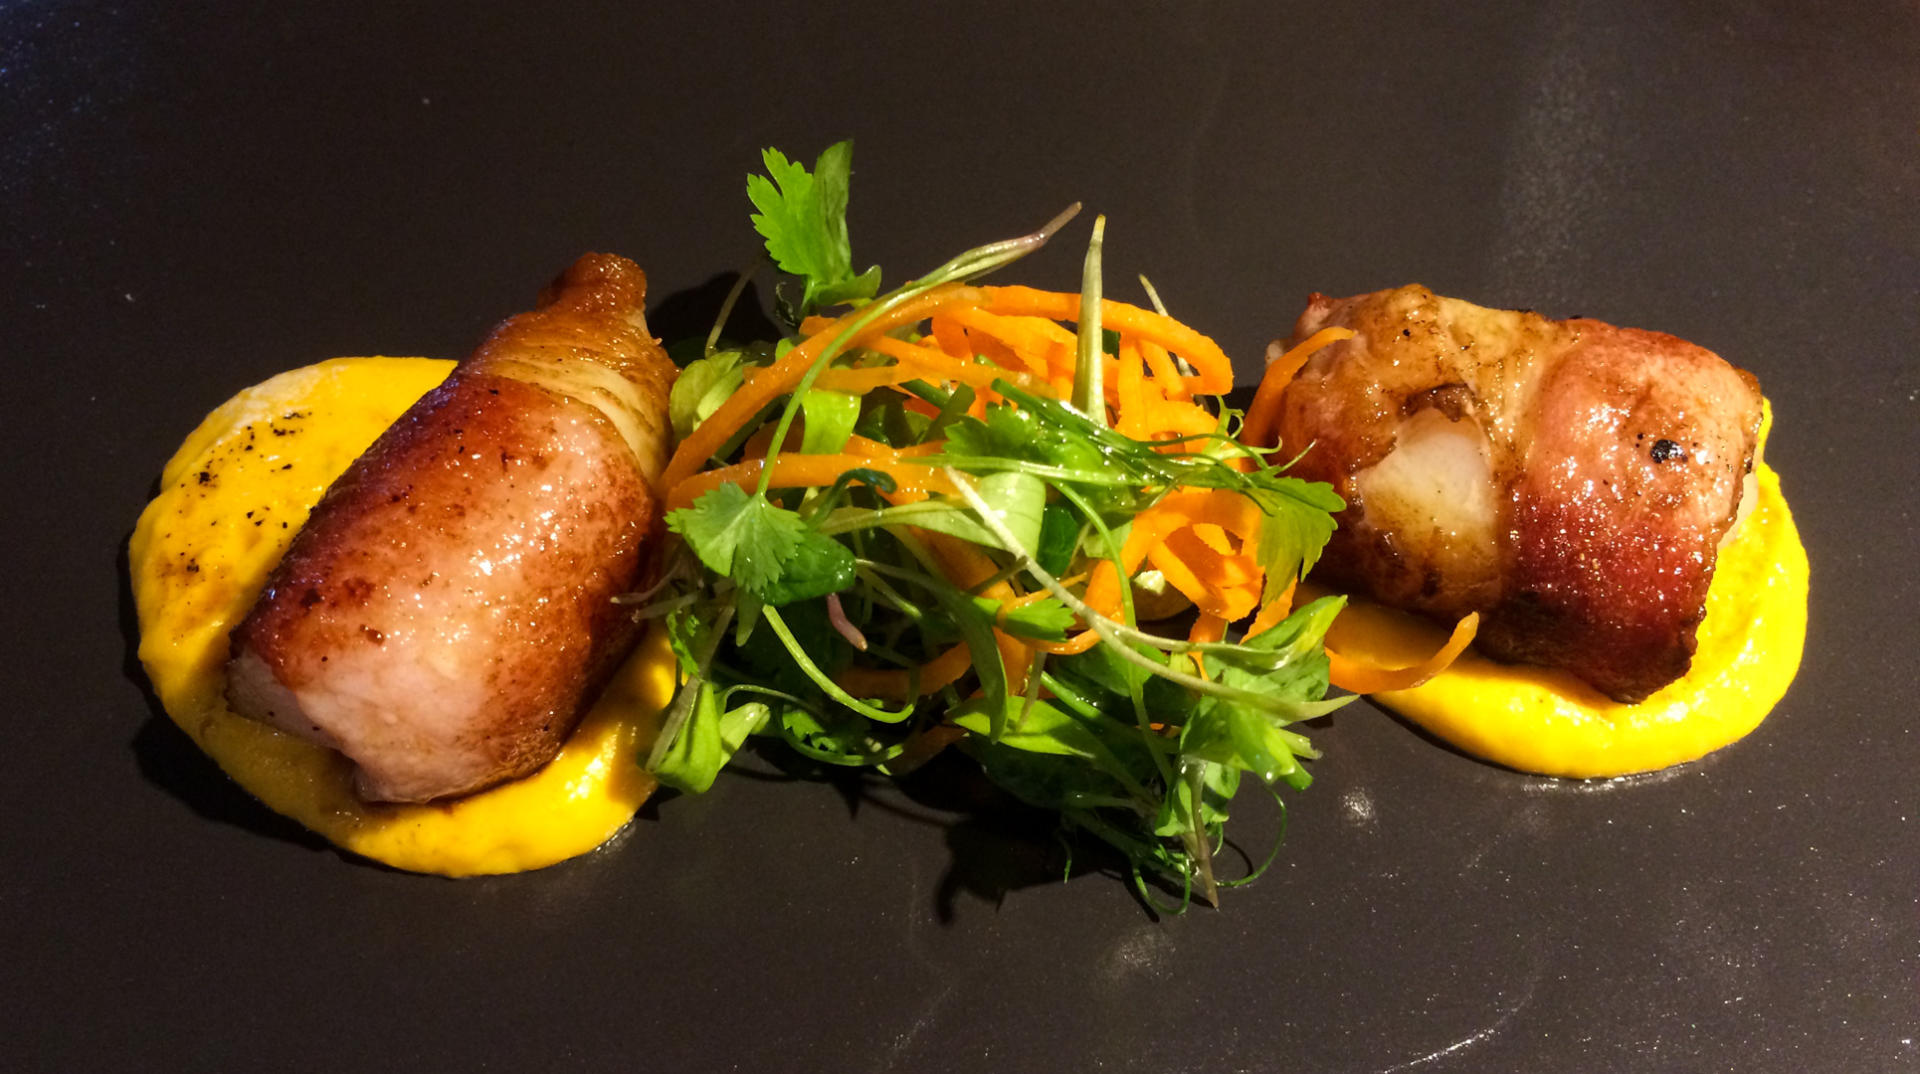 bacon wrapped scallops on a bed of pureed squash served with salad